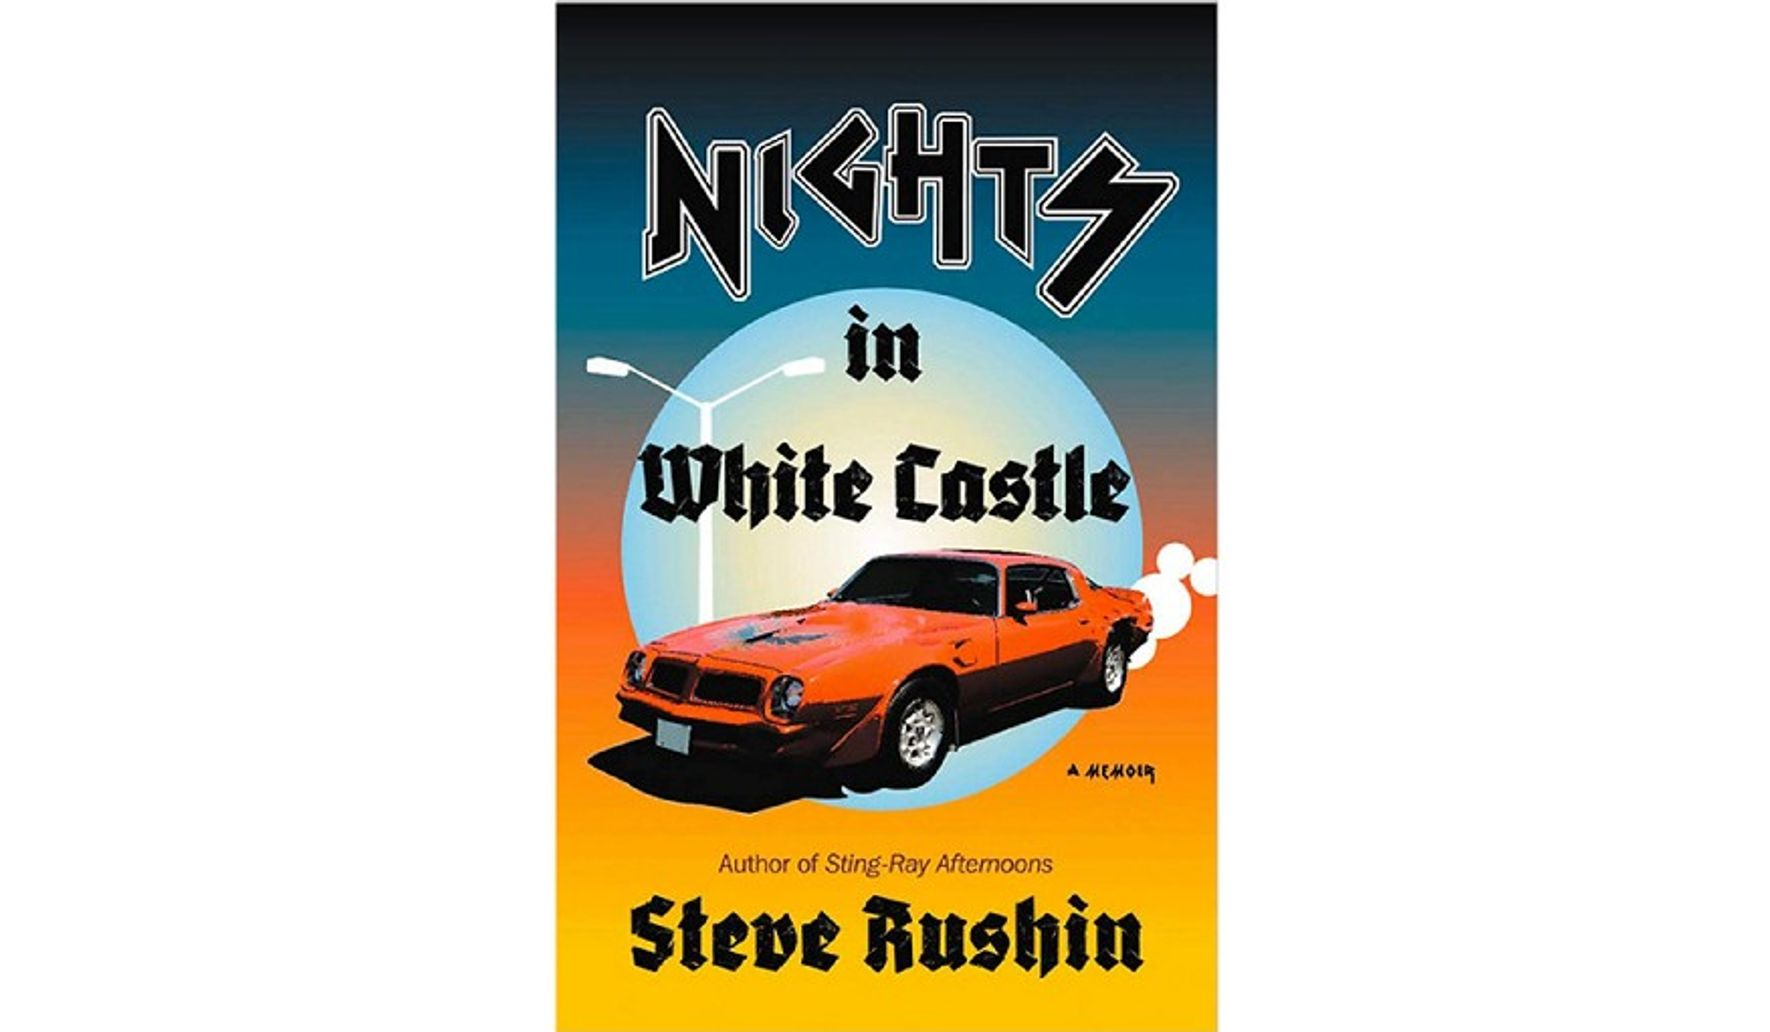 BOOK REVIEW: 'Nights in White Castle'